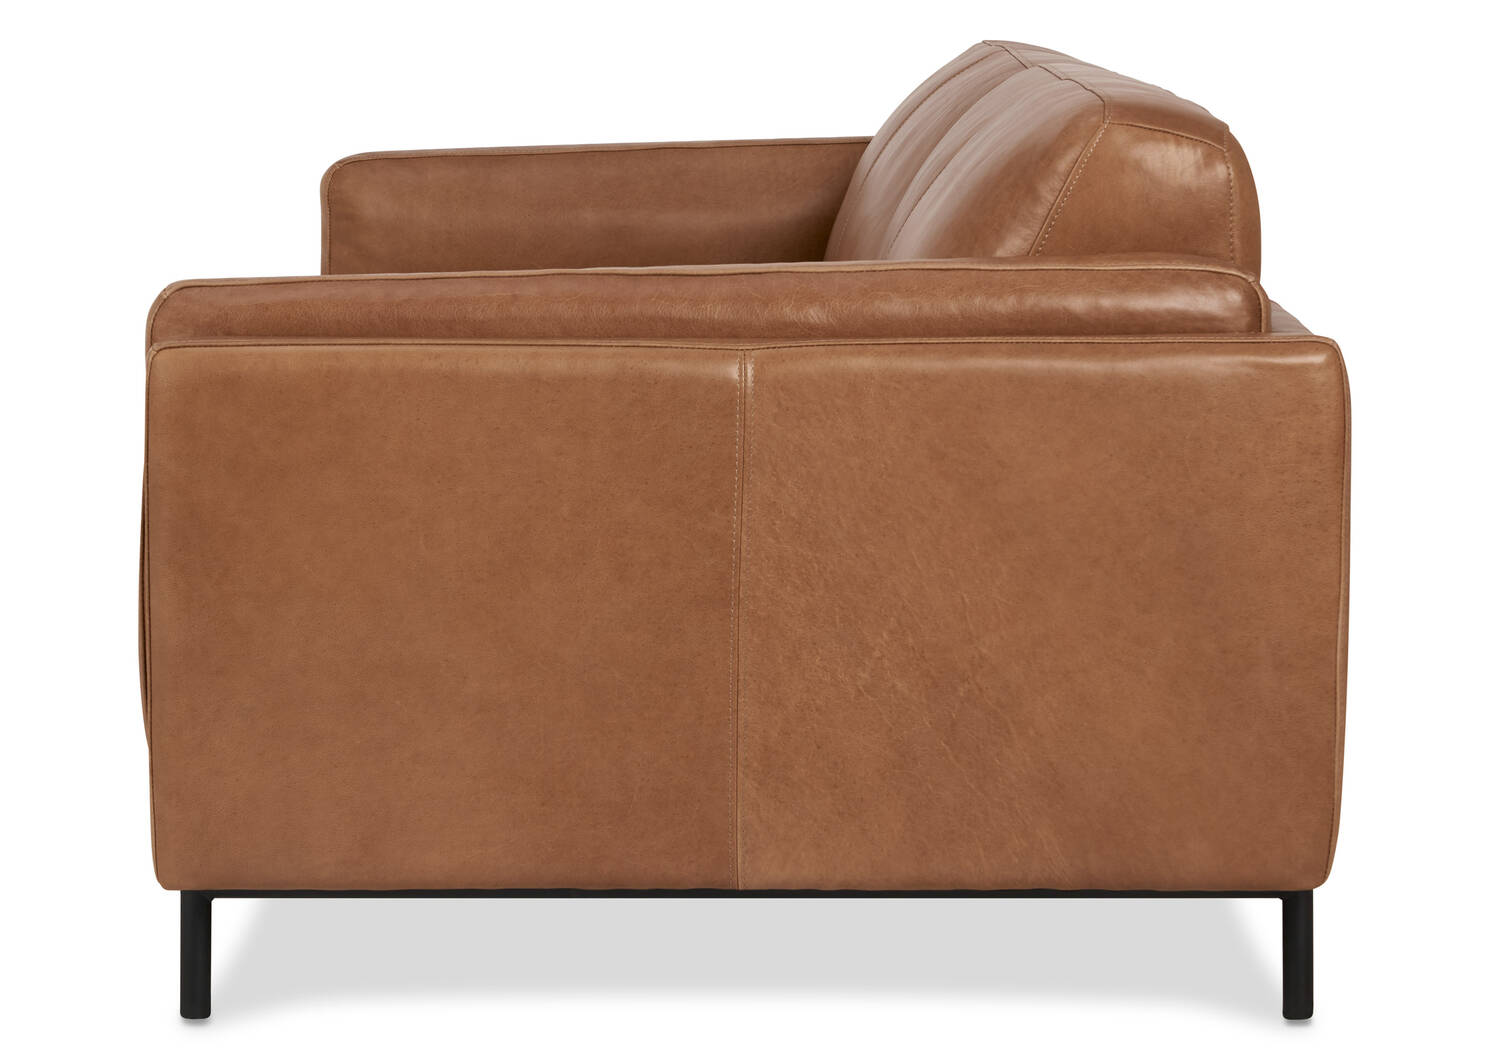 "Renfrew Leather Sofa 80"" -Adler Tan"